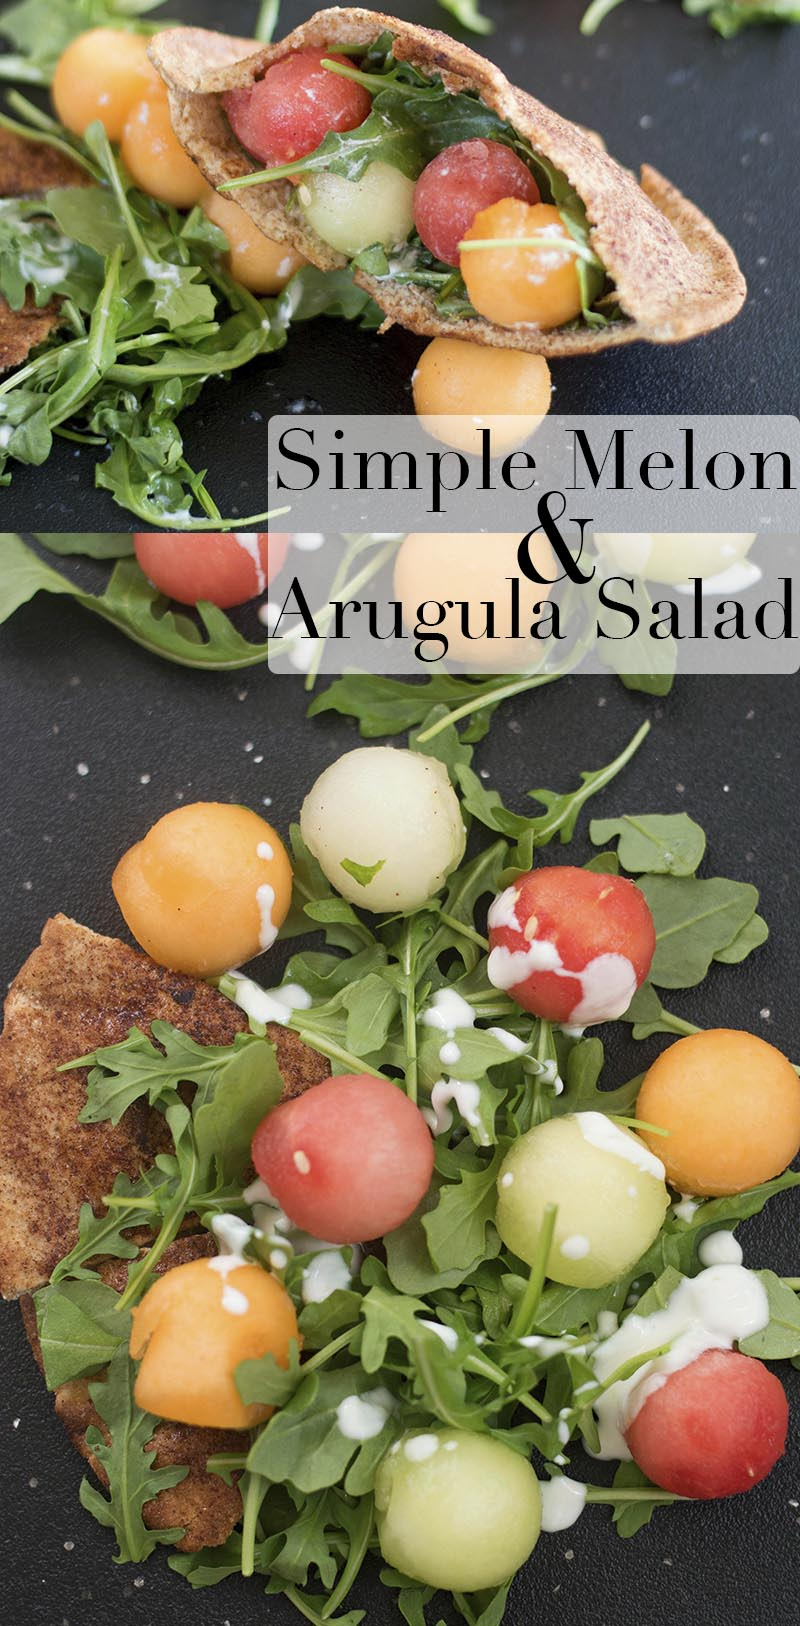 A simple melon and arugula salad with a vegan yogurt dressing. Served on a bed of pita chips or serve in a cinnamon sugar pita pocket. Easy Lunch recipe